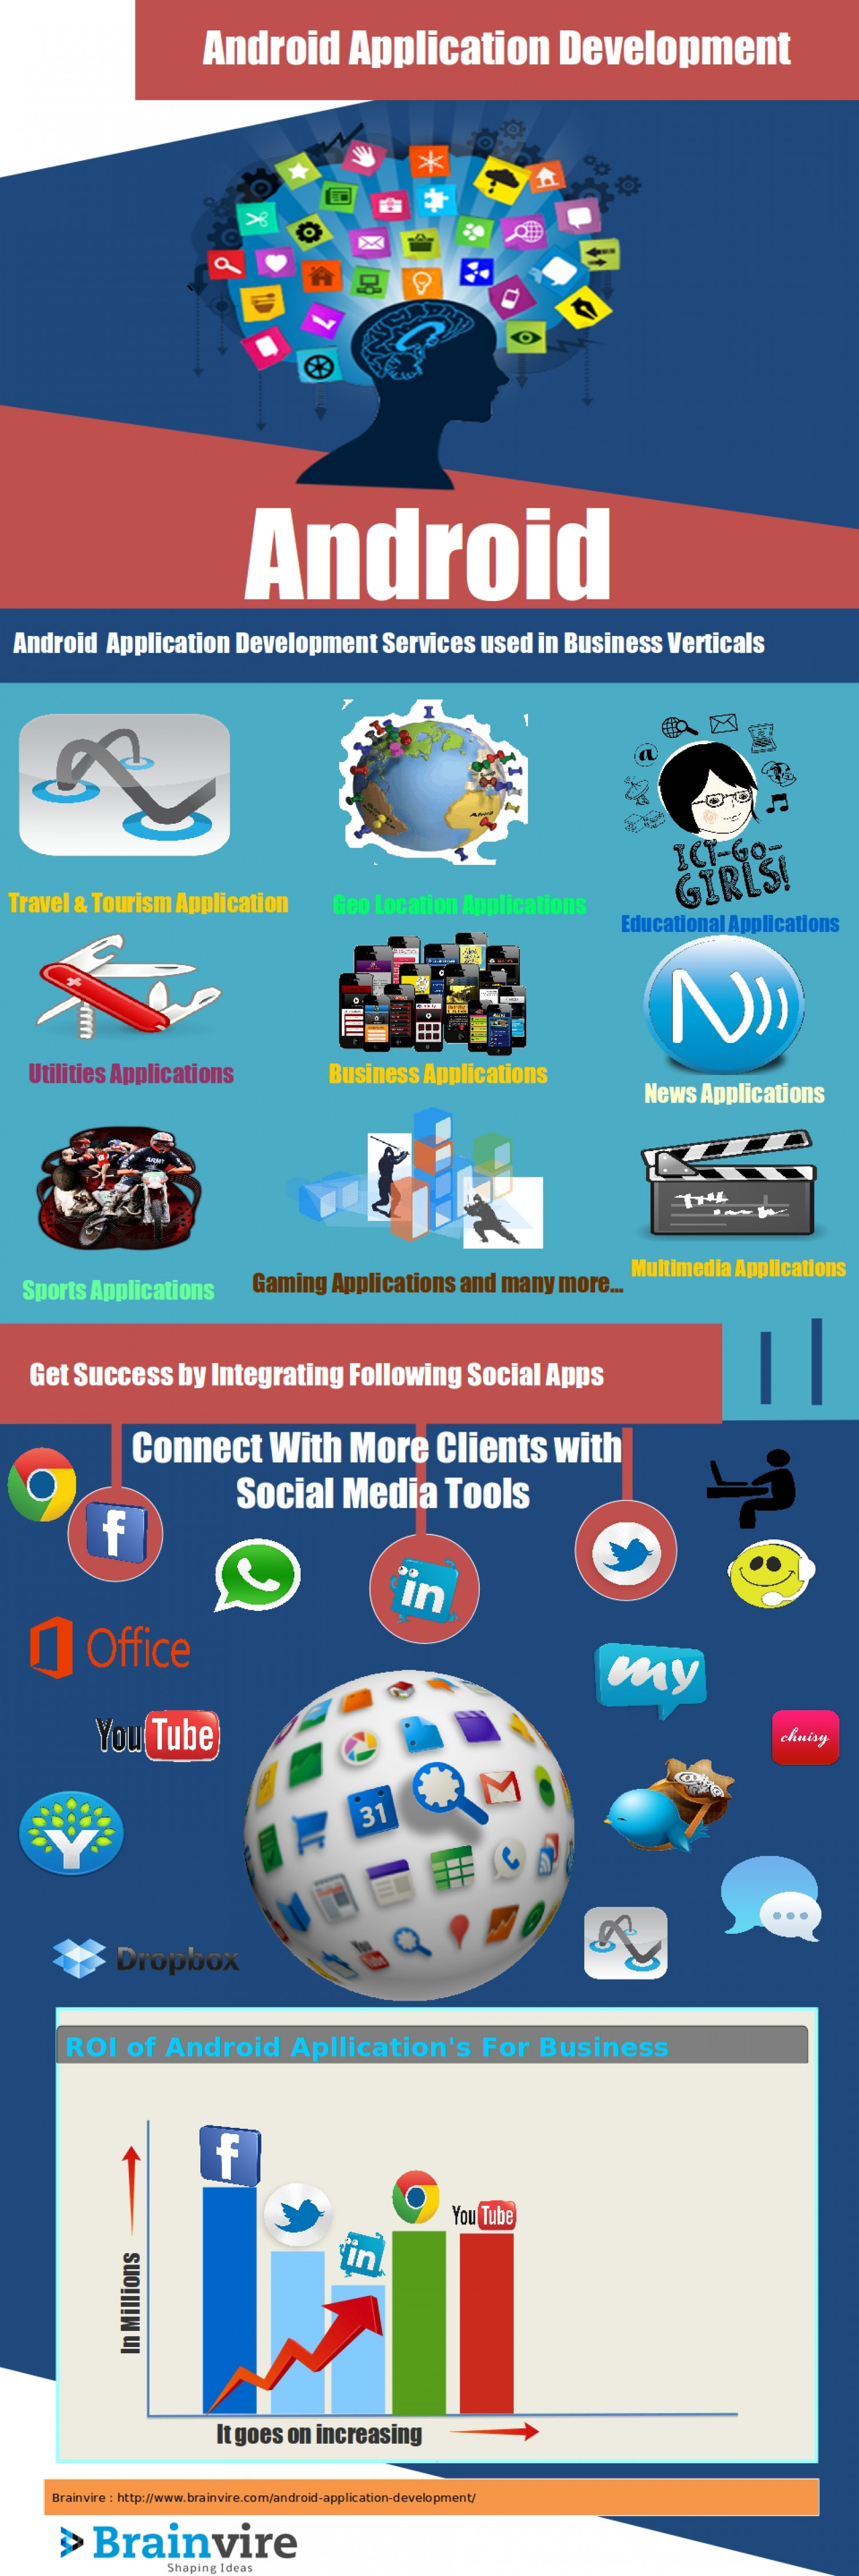 Android Application Development Infographic